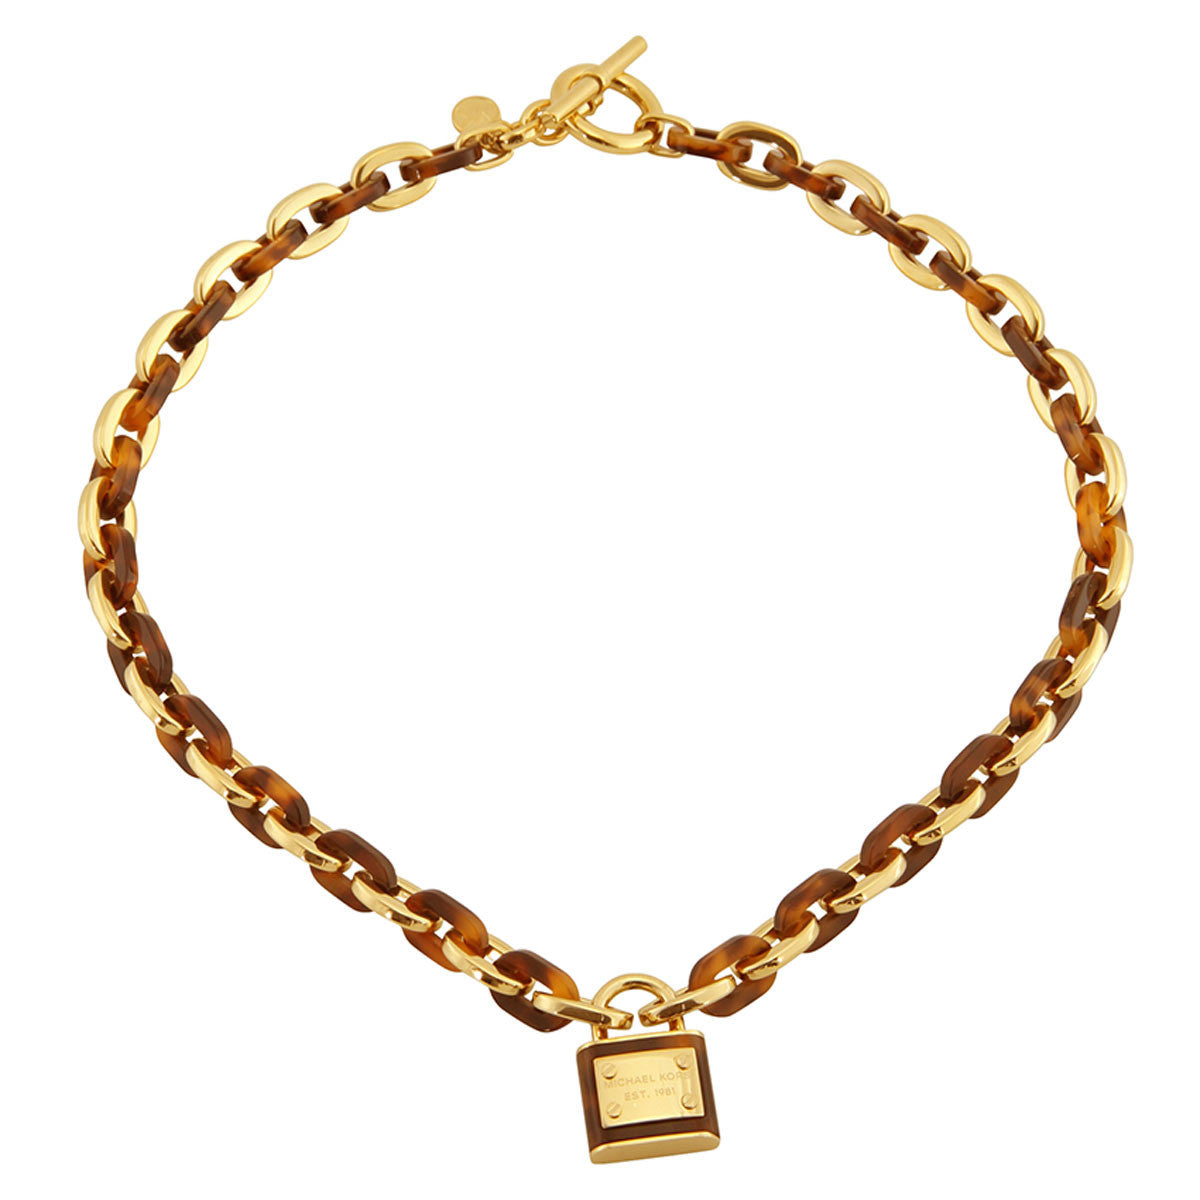 Michael Kors MKJ3488710 Women's Gold Tone Steel Tortoise Acetate Chain-Link Padlock Pendant Necklace